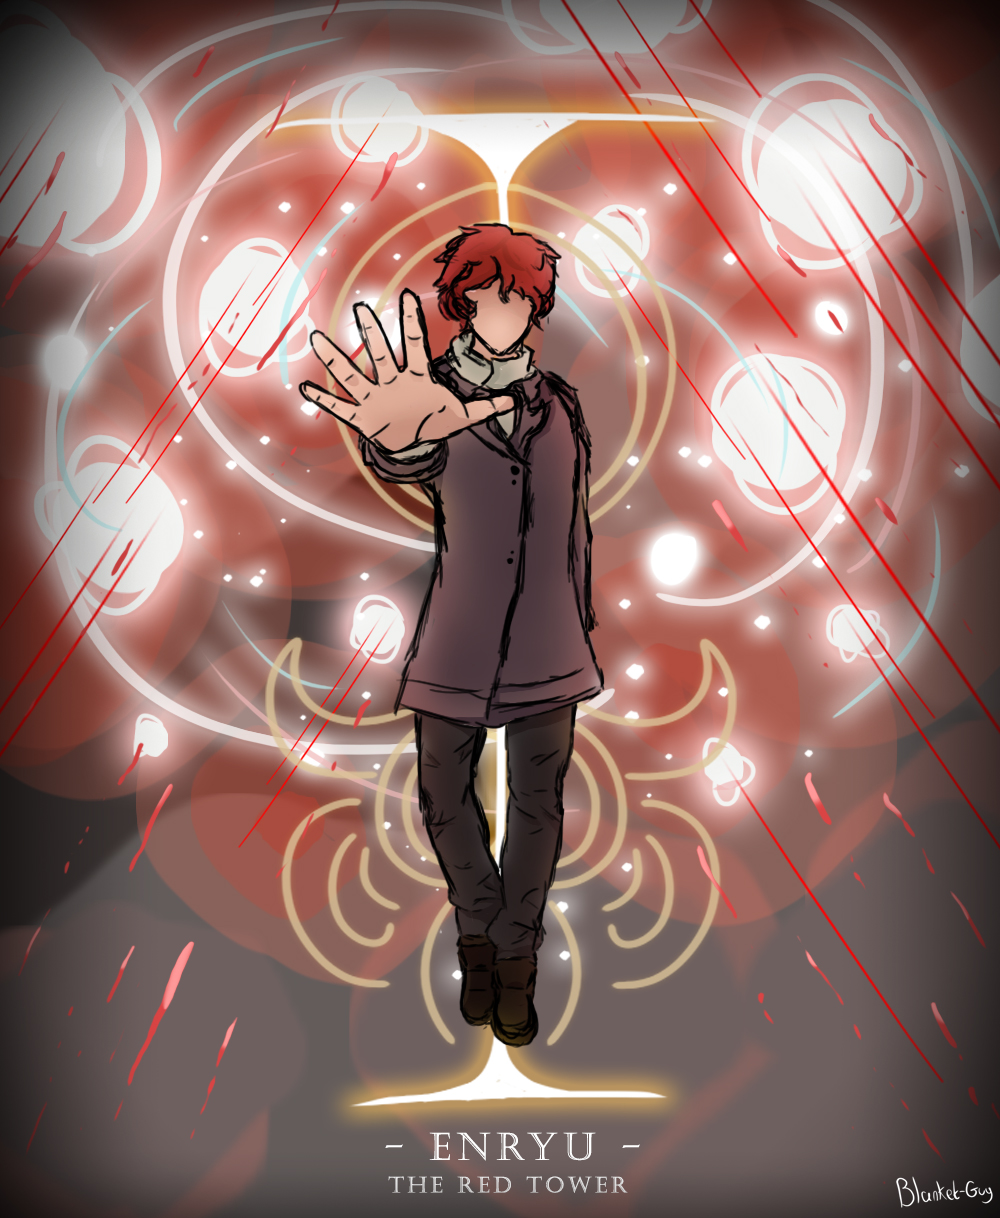 Enryu Tower Of God Different Pose By Blanket Guy On